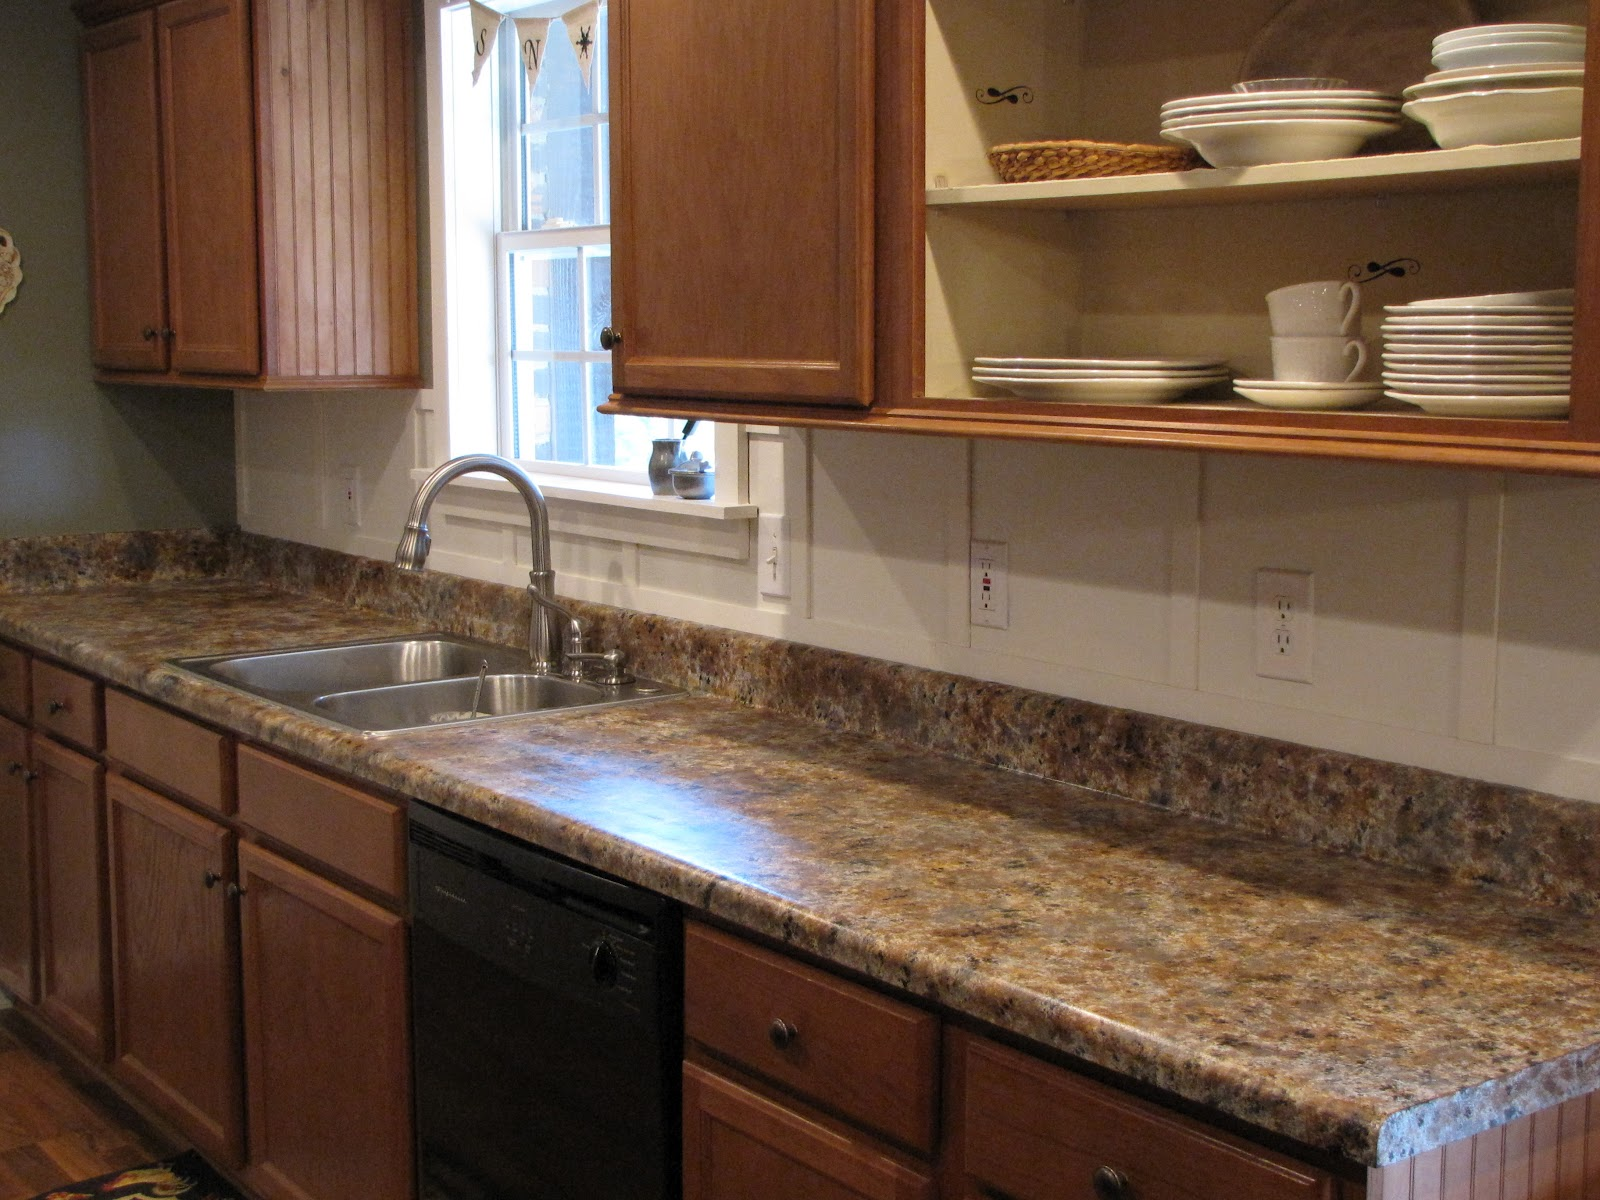 painting laminate countertops in the kitchen